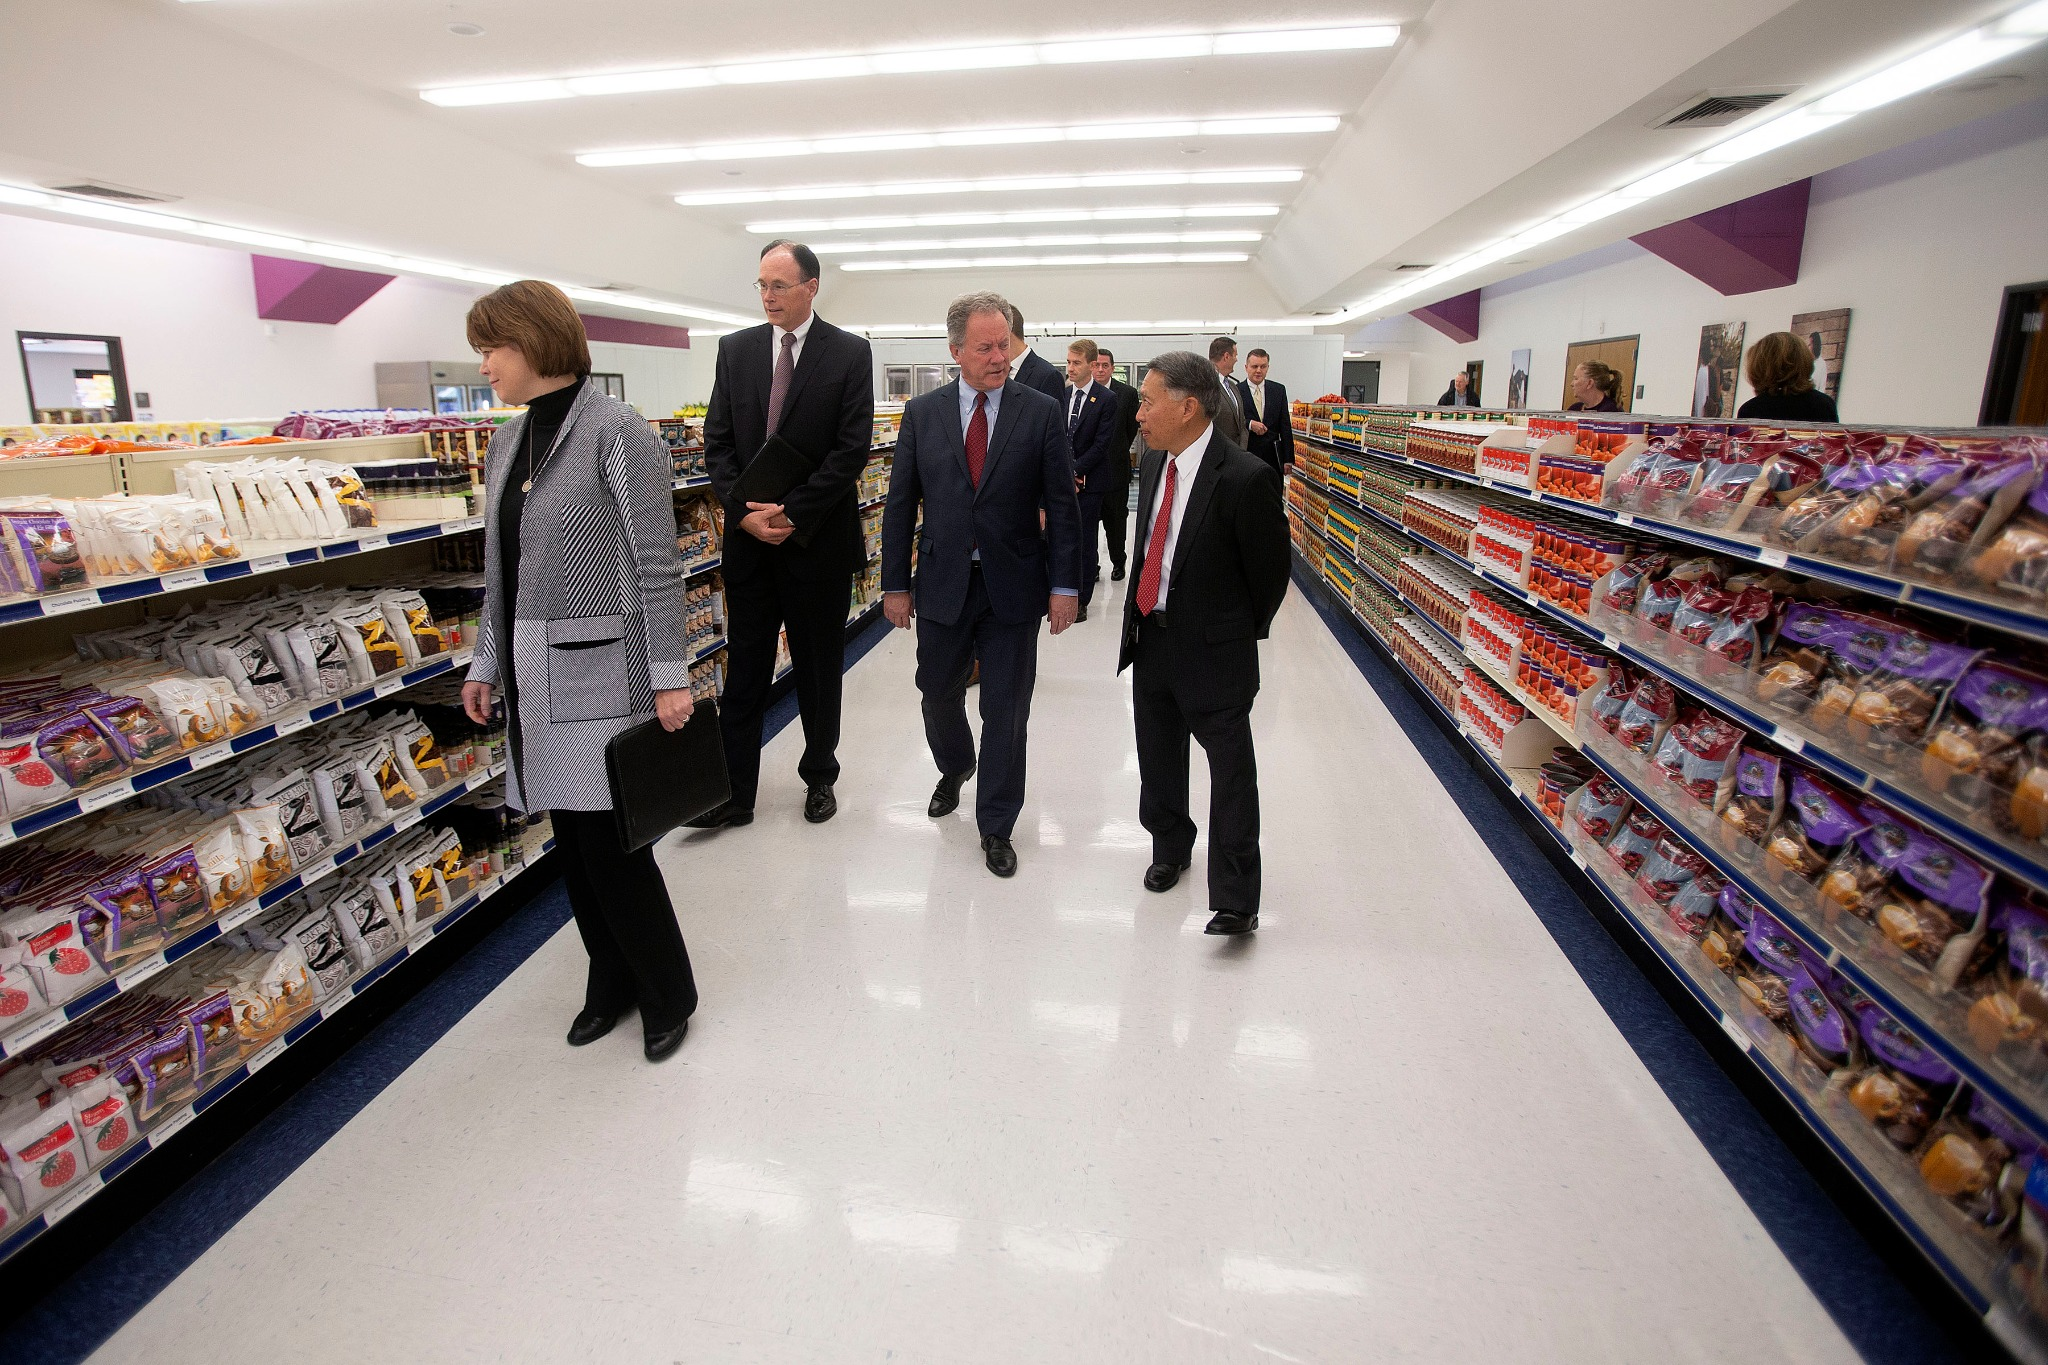 David Beasley, executive director of the United Nations World Food Program, visits the BIshops' Central Storehouse on Monday, Sept. 30, 2019, with Sister Sharon Eubank, president of Latter-day Charities and counselor in the Relief Society general presidency, and Bishop W. Christopher Waddell of the Presiding Bishopric.